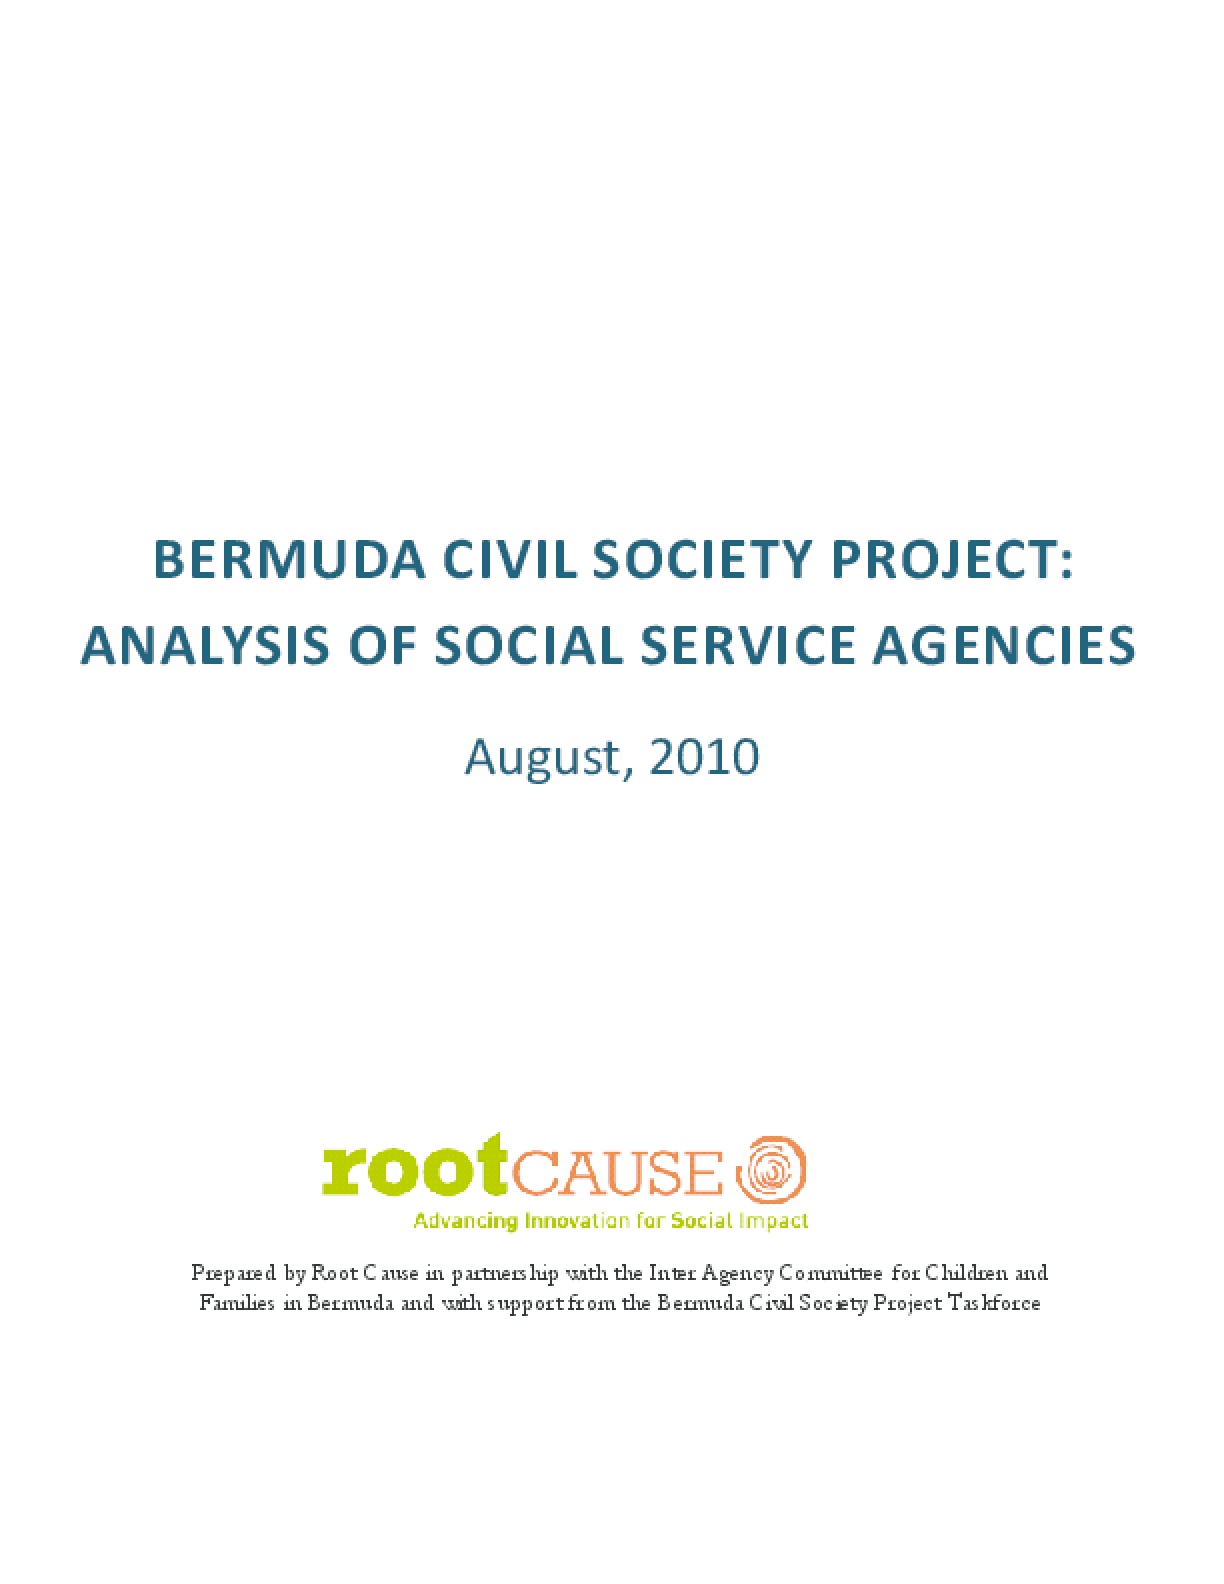 Bermuda Civil Society Project: Analysis of Social Service Agencies